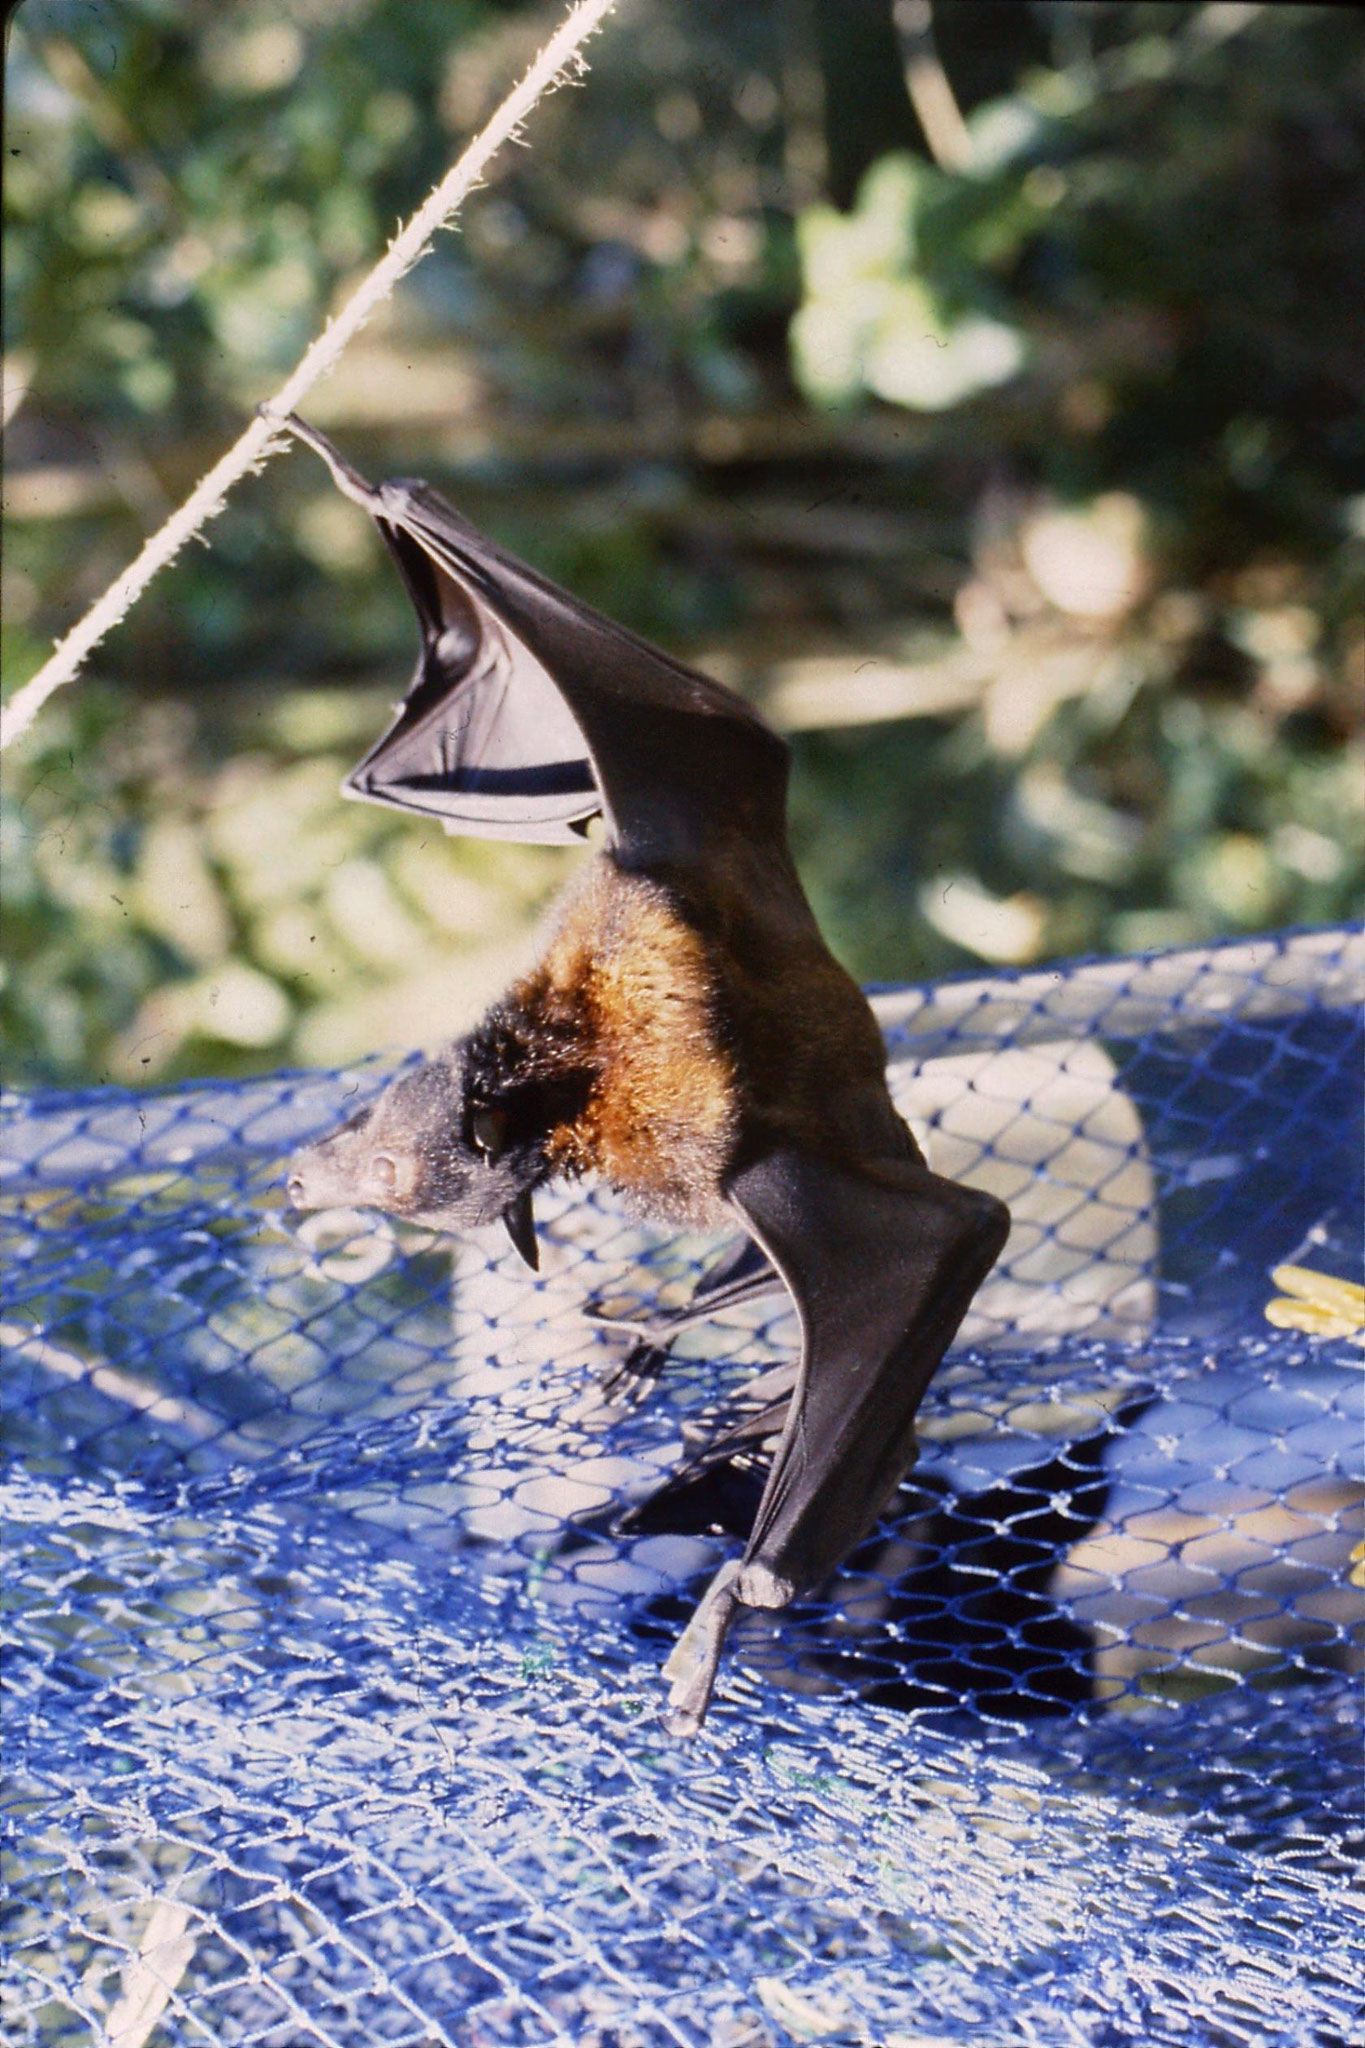 27/10/1990: 23: Cape Tribulation, flying foxes at High and Brigitta's place in Cairns